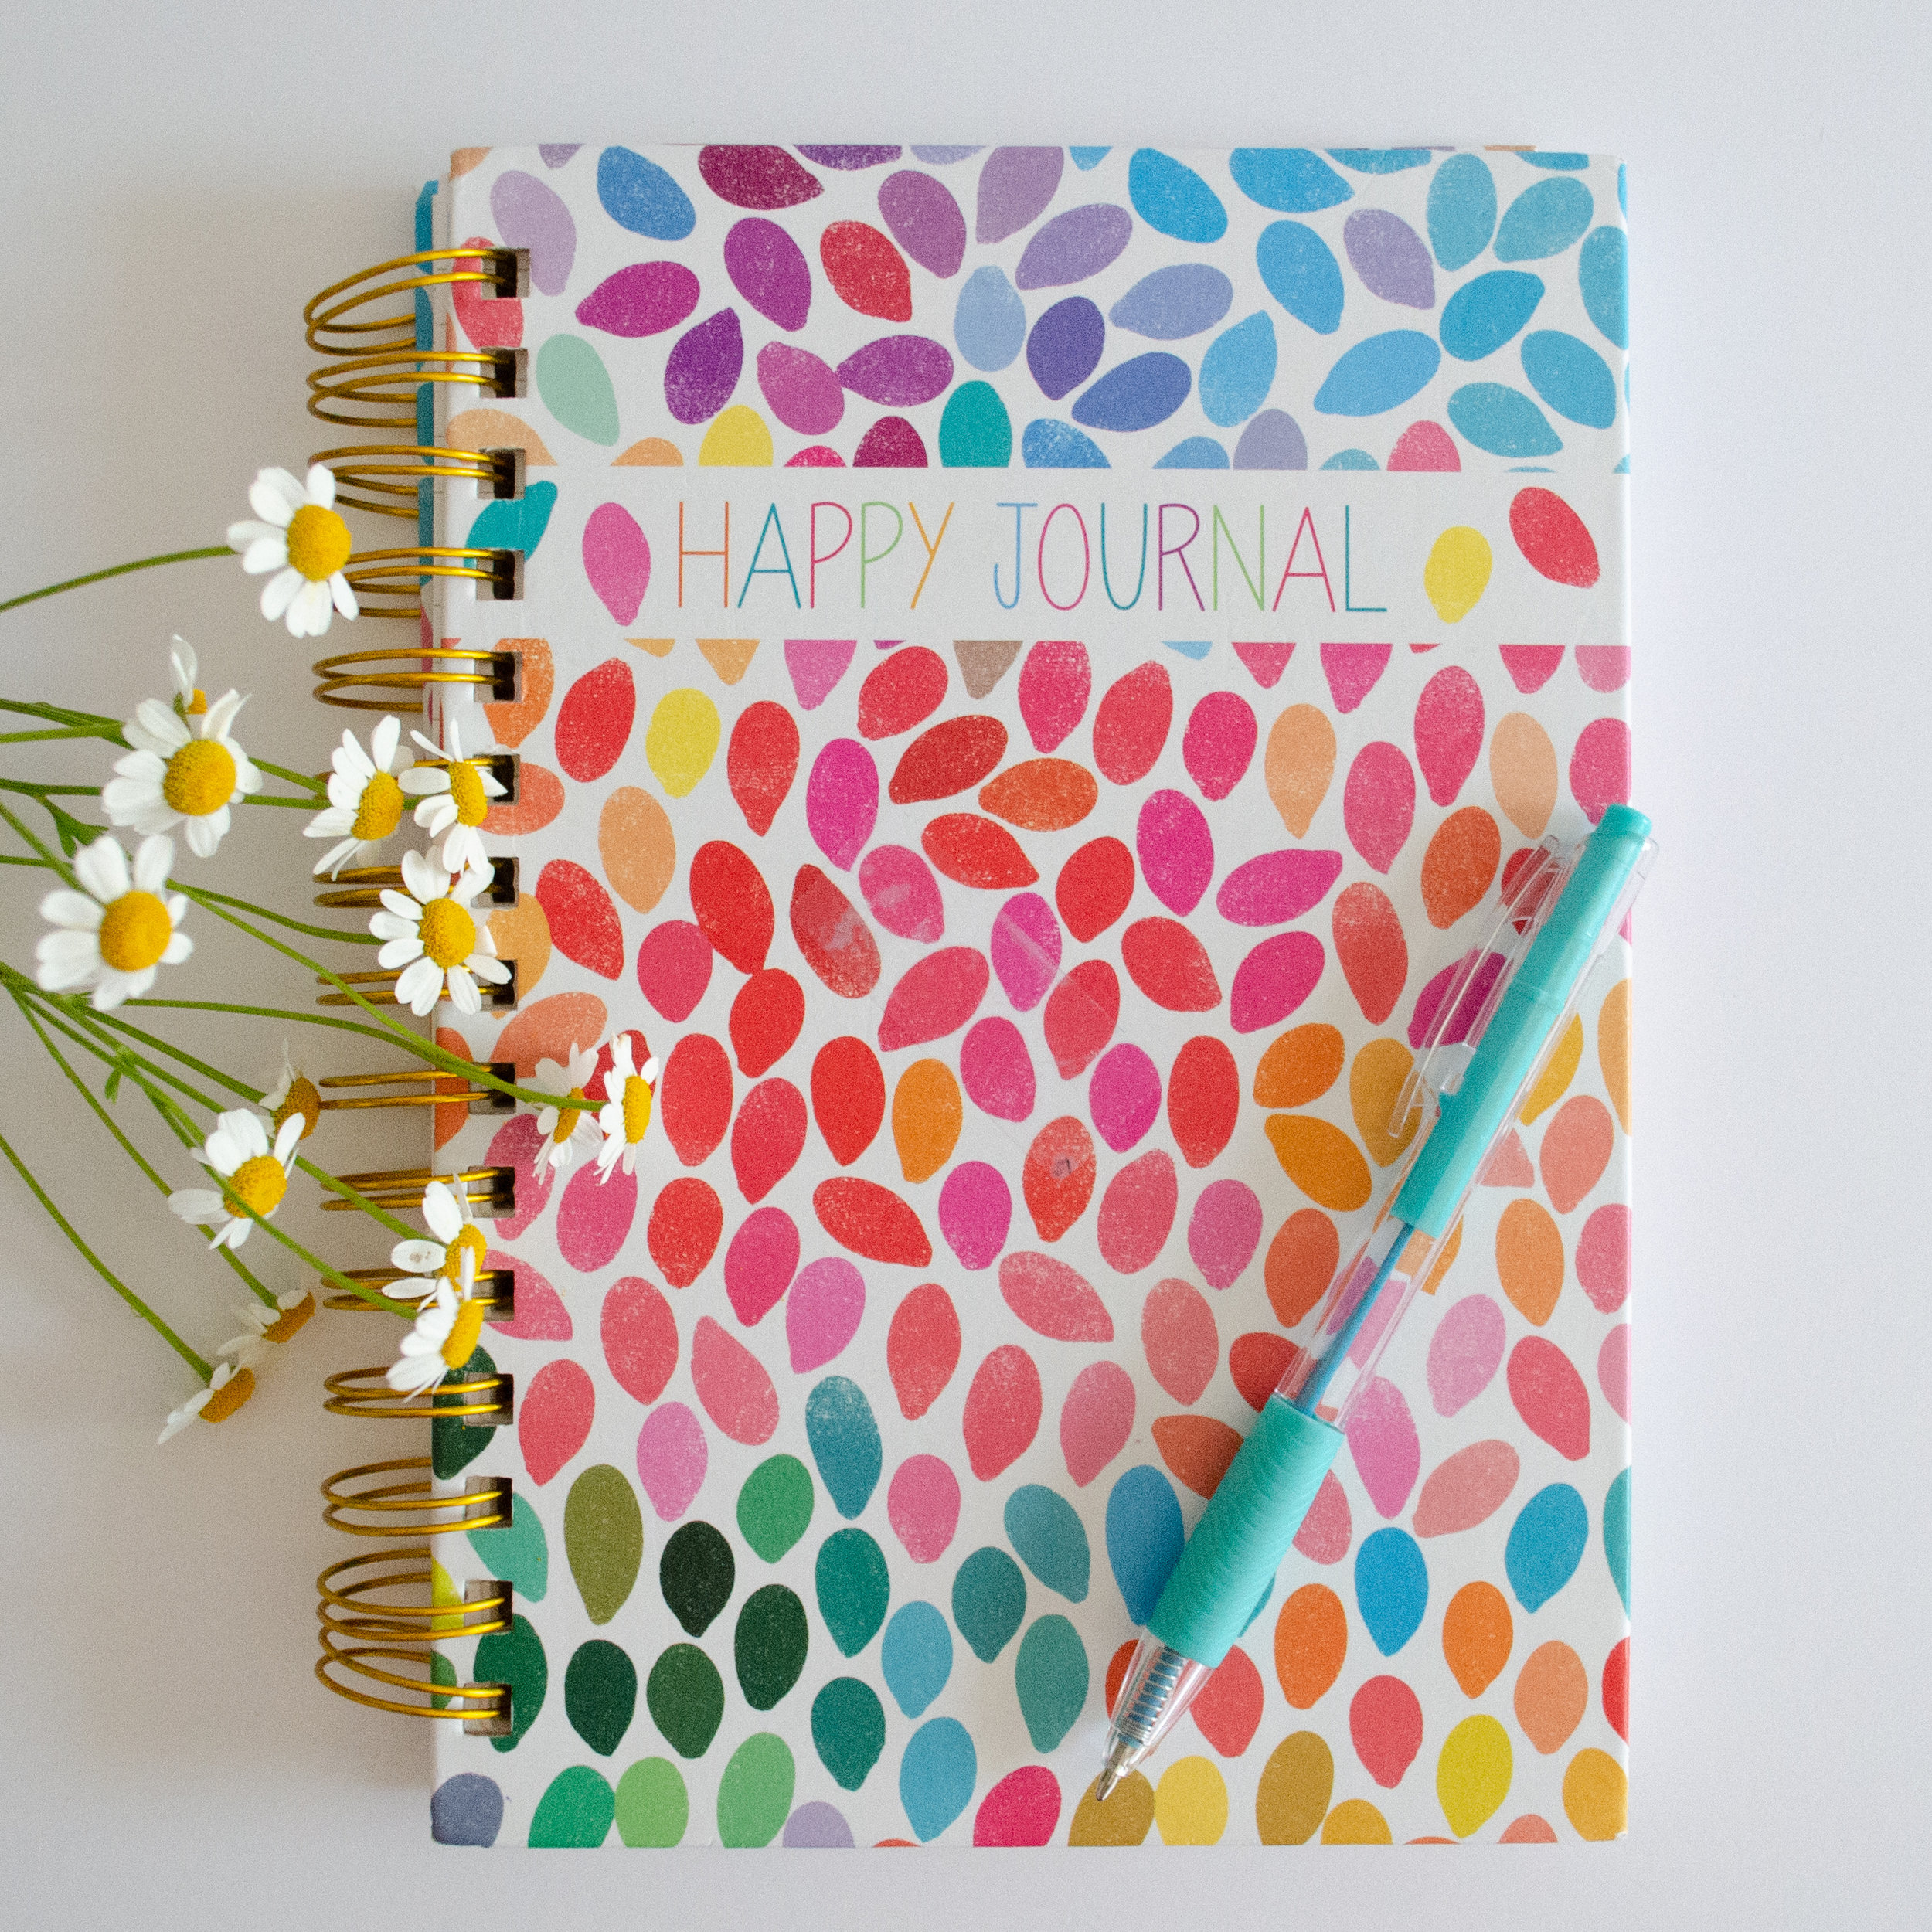 Happy Journal with flowers_.jpg